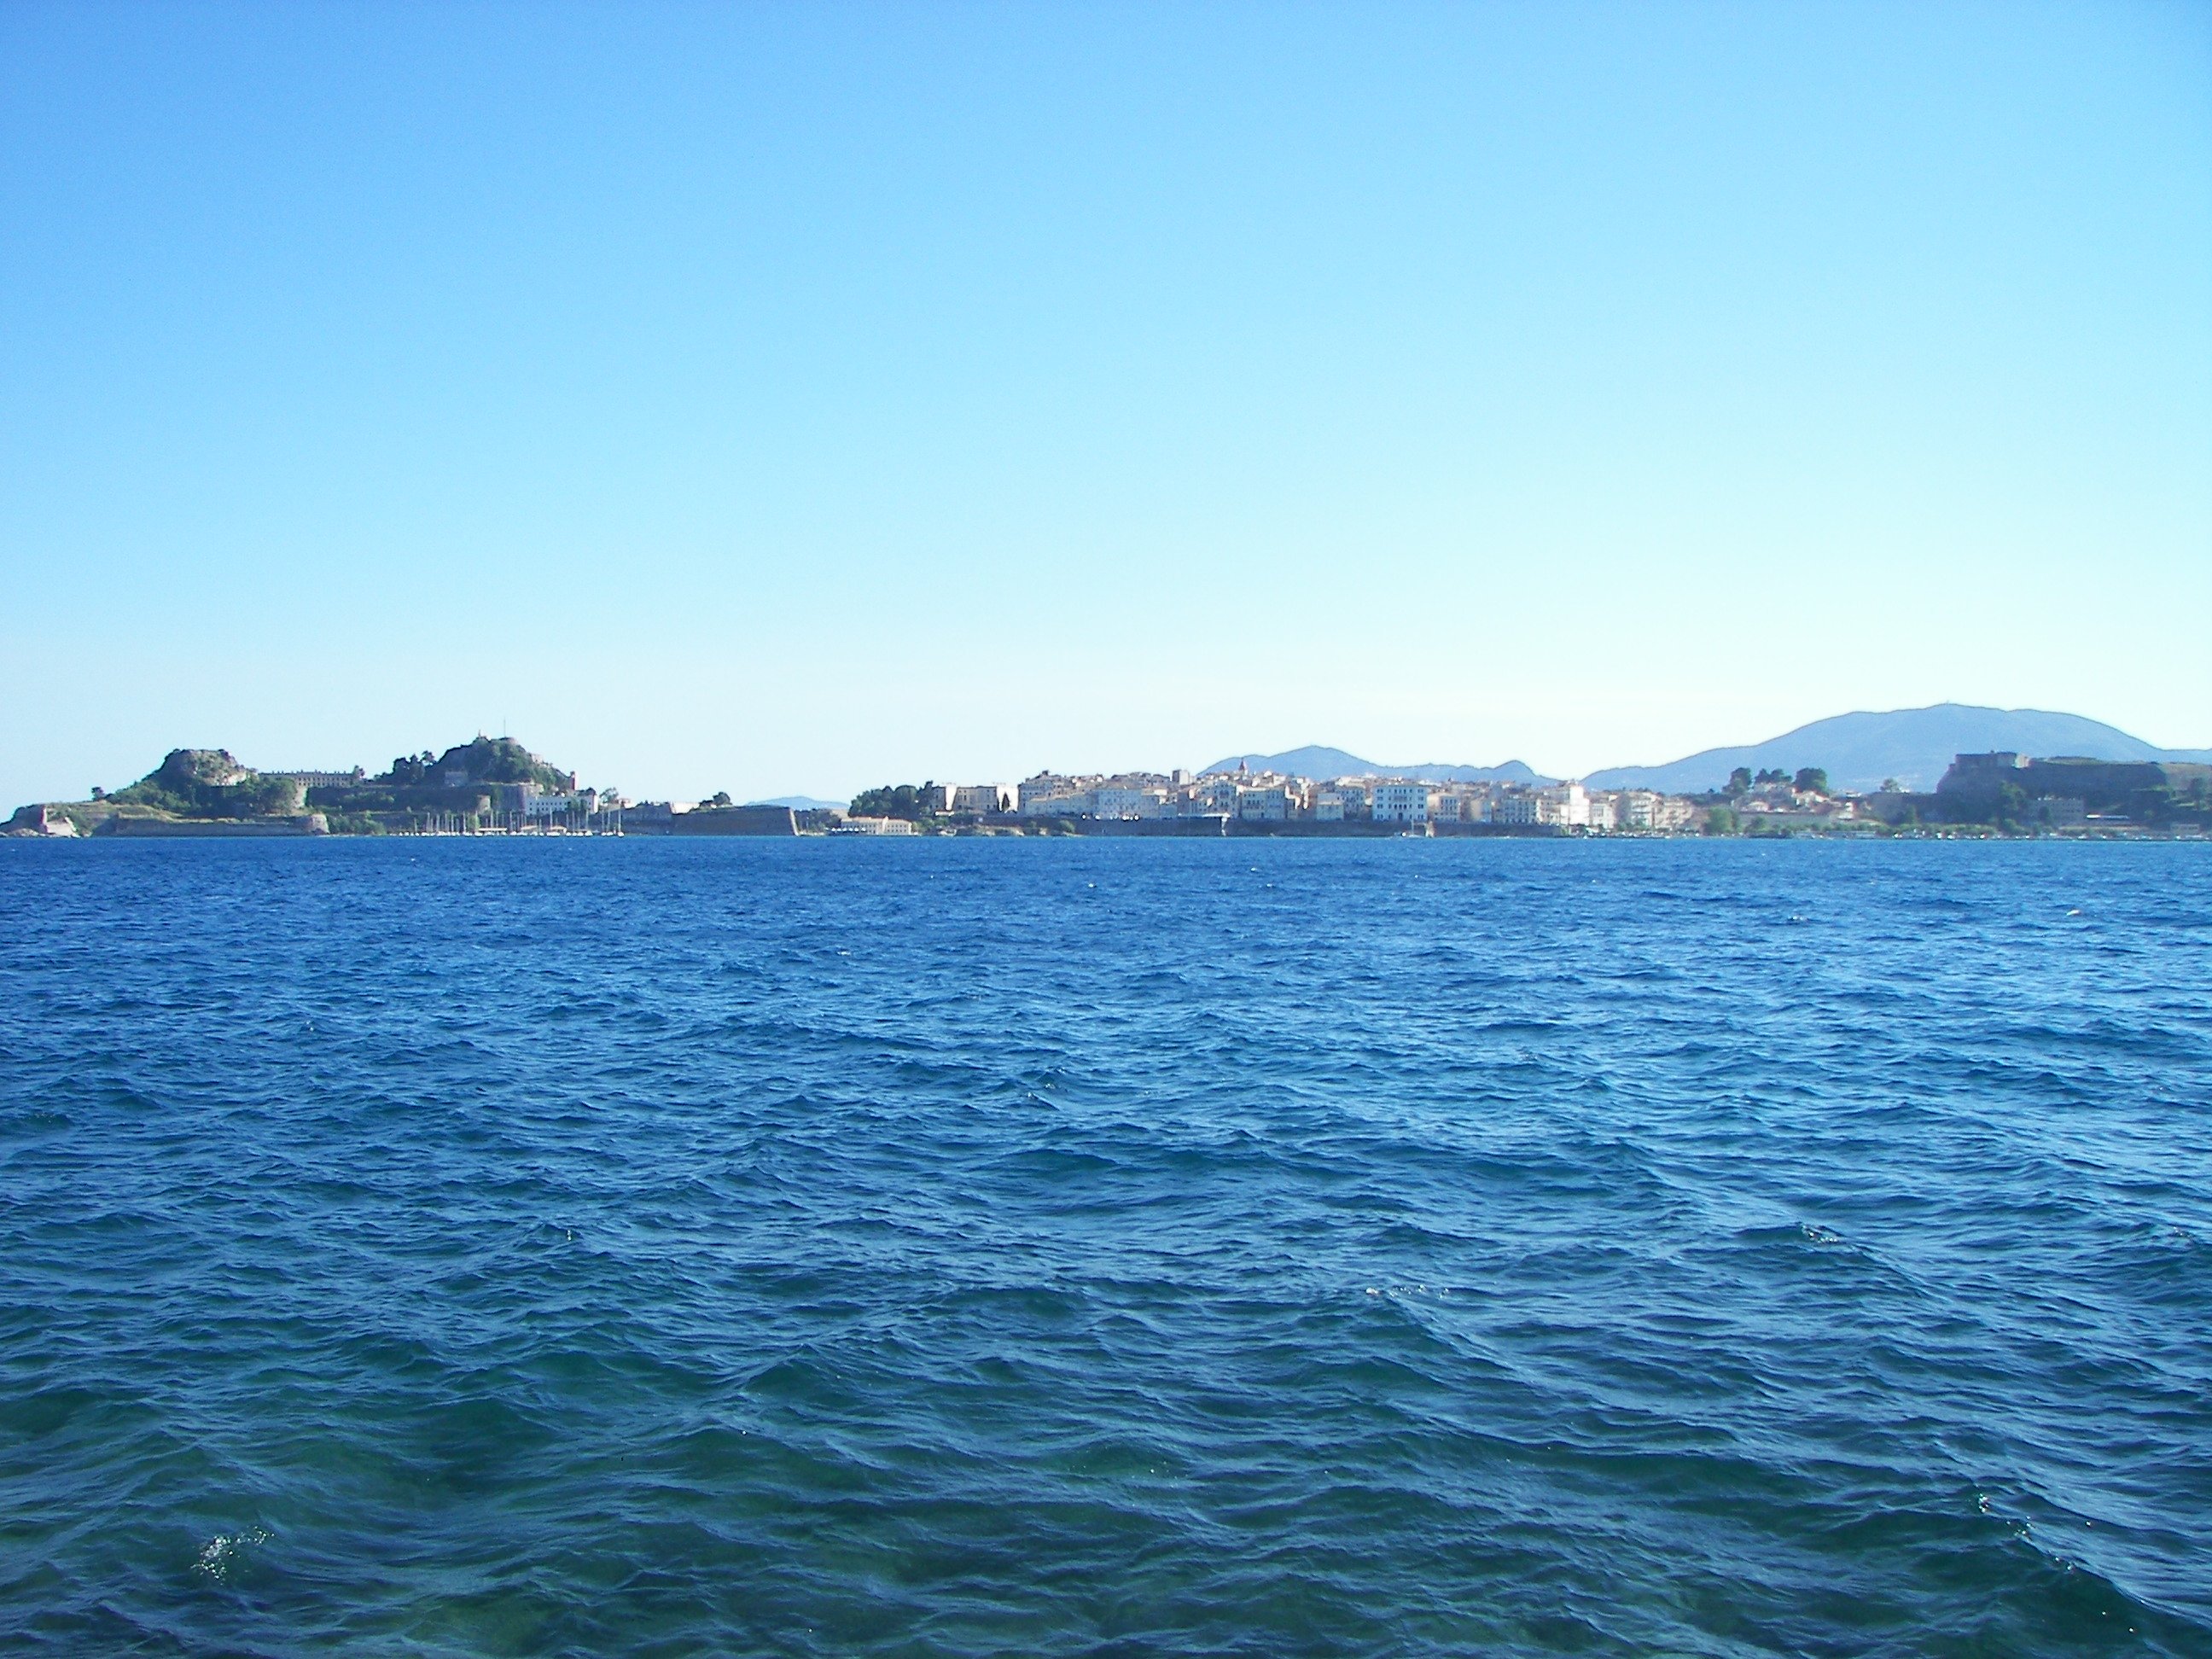 File:Corfu city from the sea.JPG  Wikimedia Commons